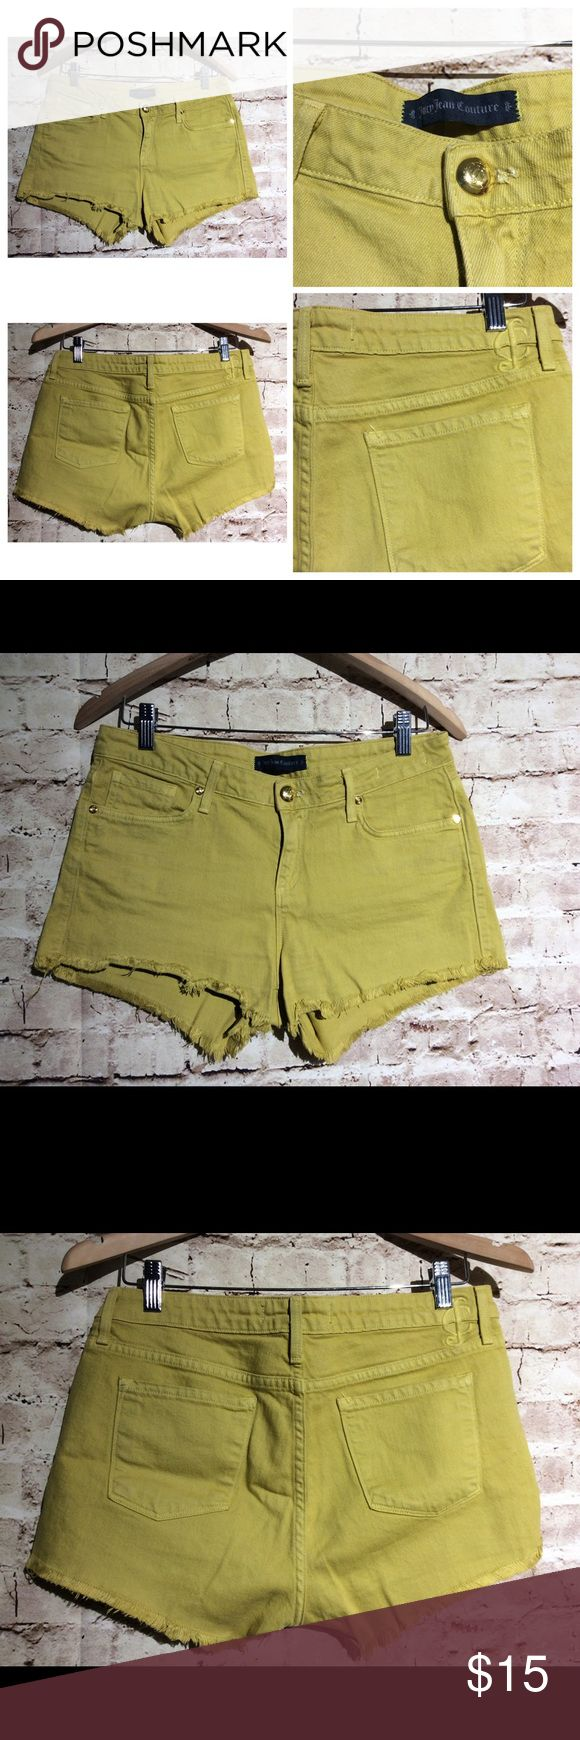 "JUICY COUTURE DAISY DUKE DENIM SHORT JEANS Cutoff JUICY COUTURE DAISY DUKE DENIM SHORT JEANS Cutoff SHORTS Mid-Rise sz 28 Mustard. Measurements  32"" waist  10.5"" outseam 38"" hips 9"" rise 24"" leg opening Juicy Couture Shorts"